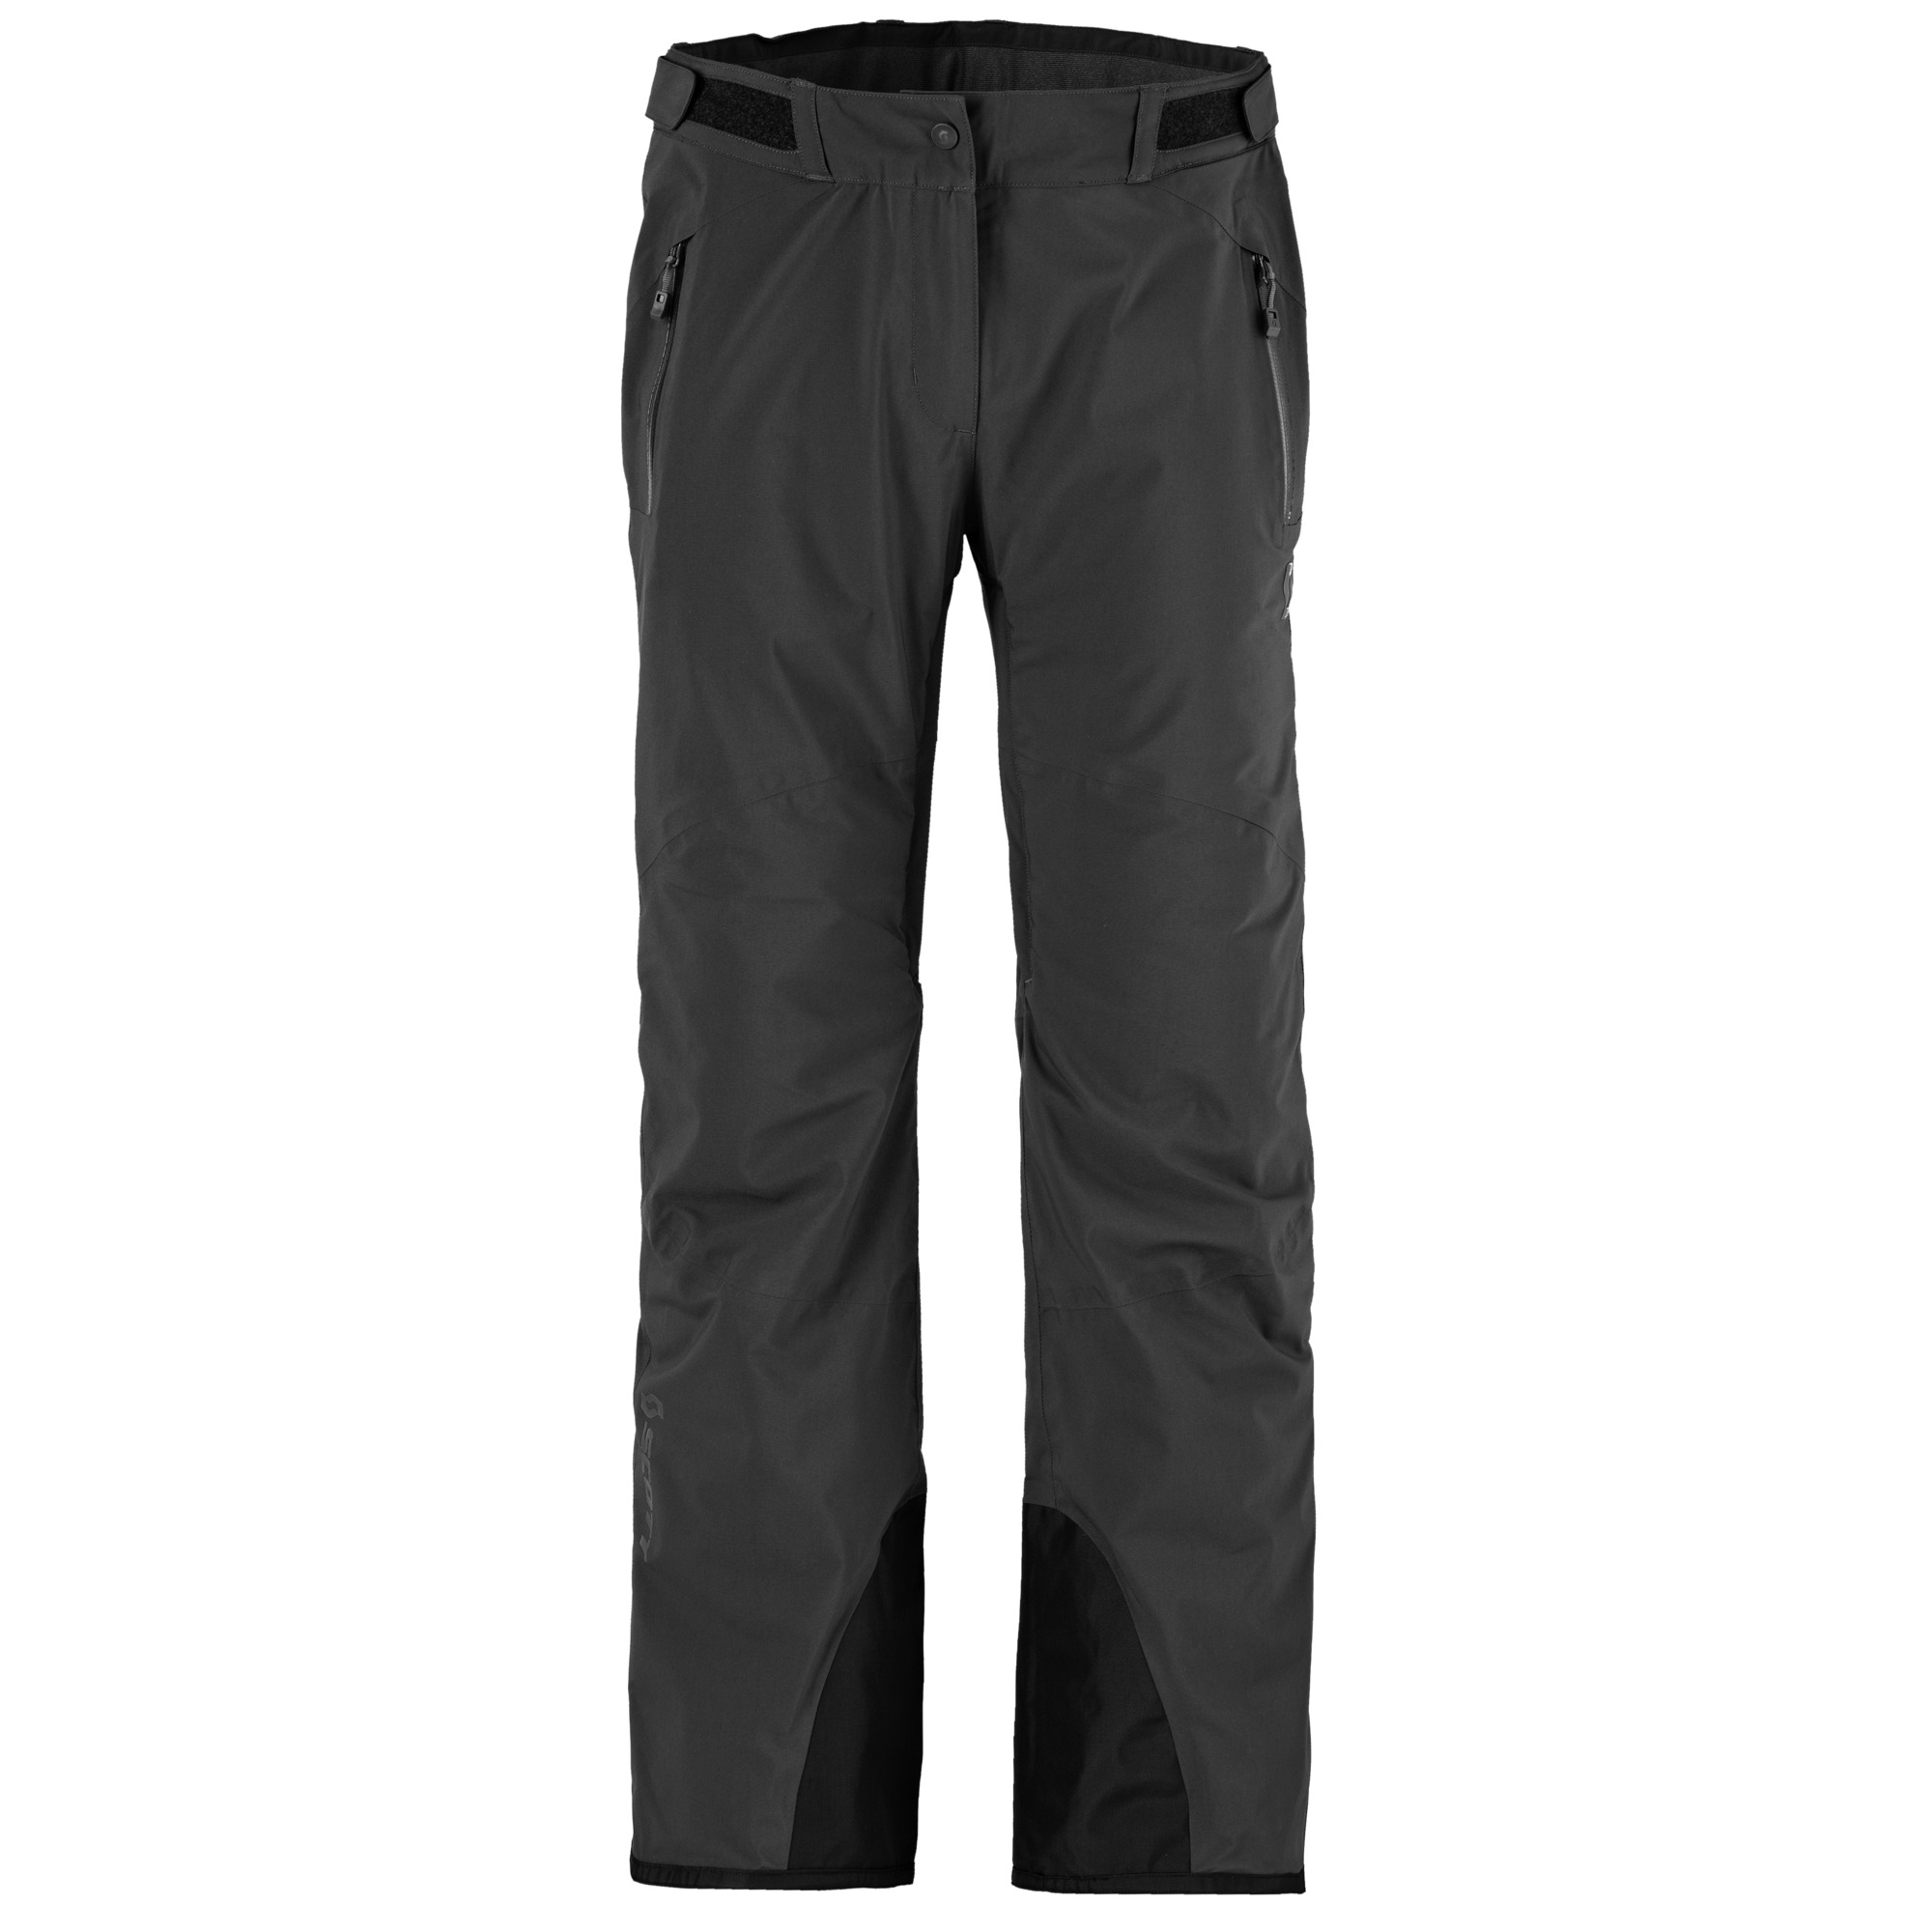 SCOTT Ultimate DRX Women's Pant